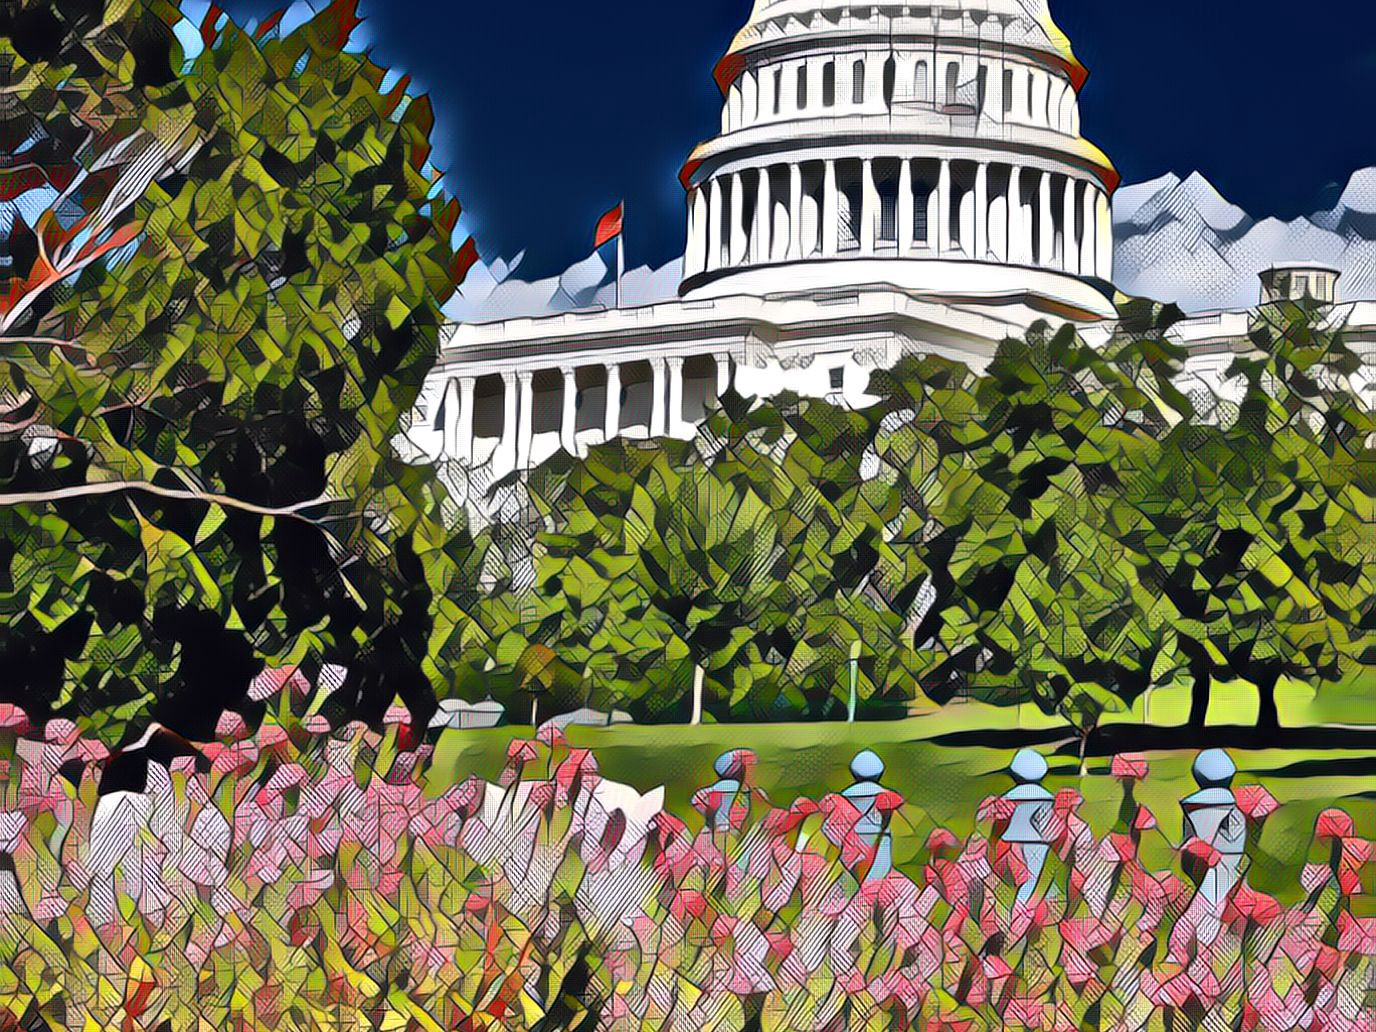 A view of the United States Capitol in spring, with flowers in the foreground and trees in the middle.